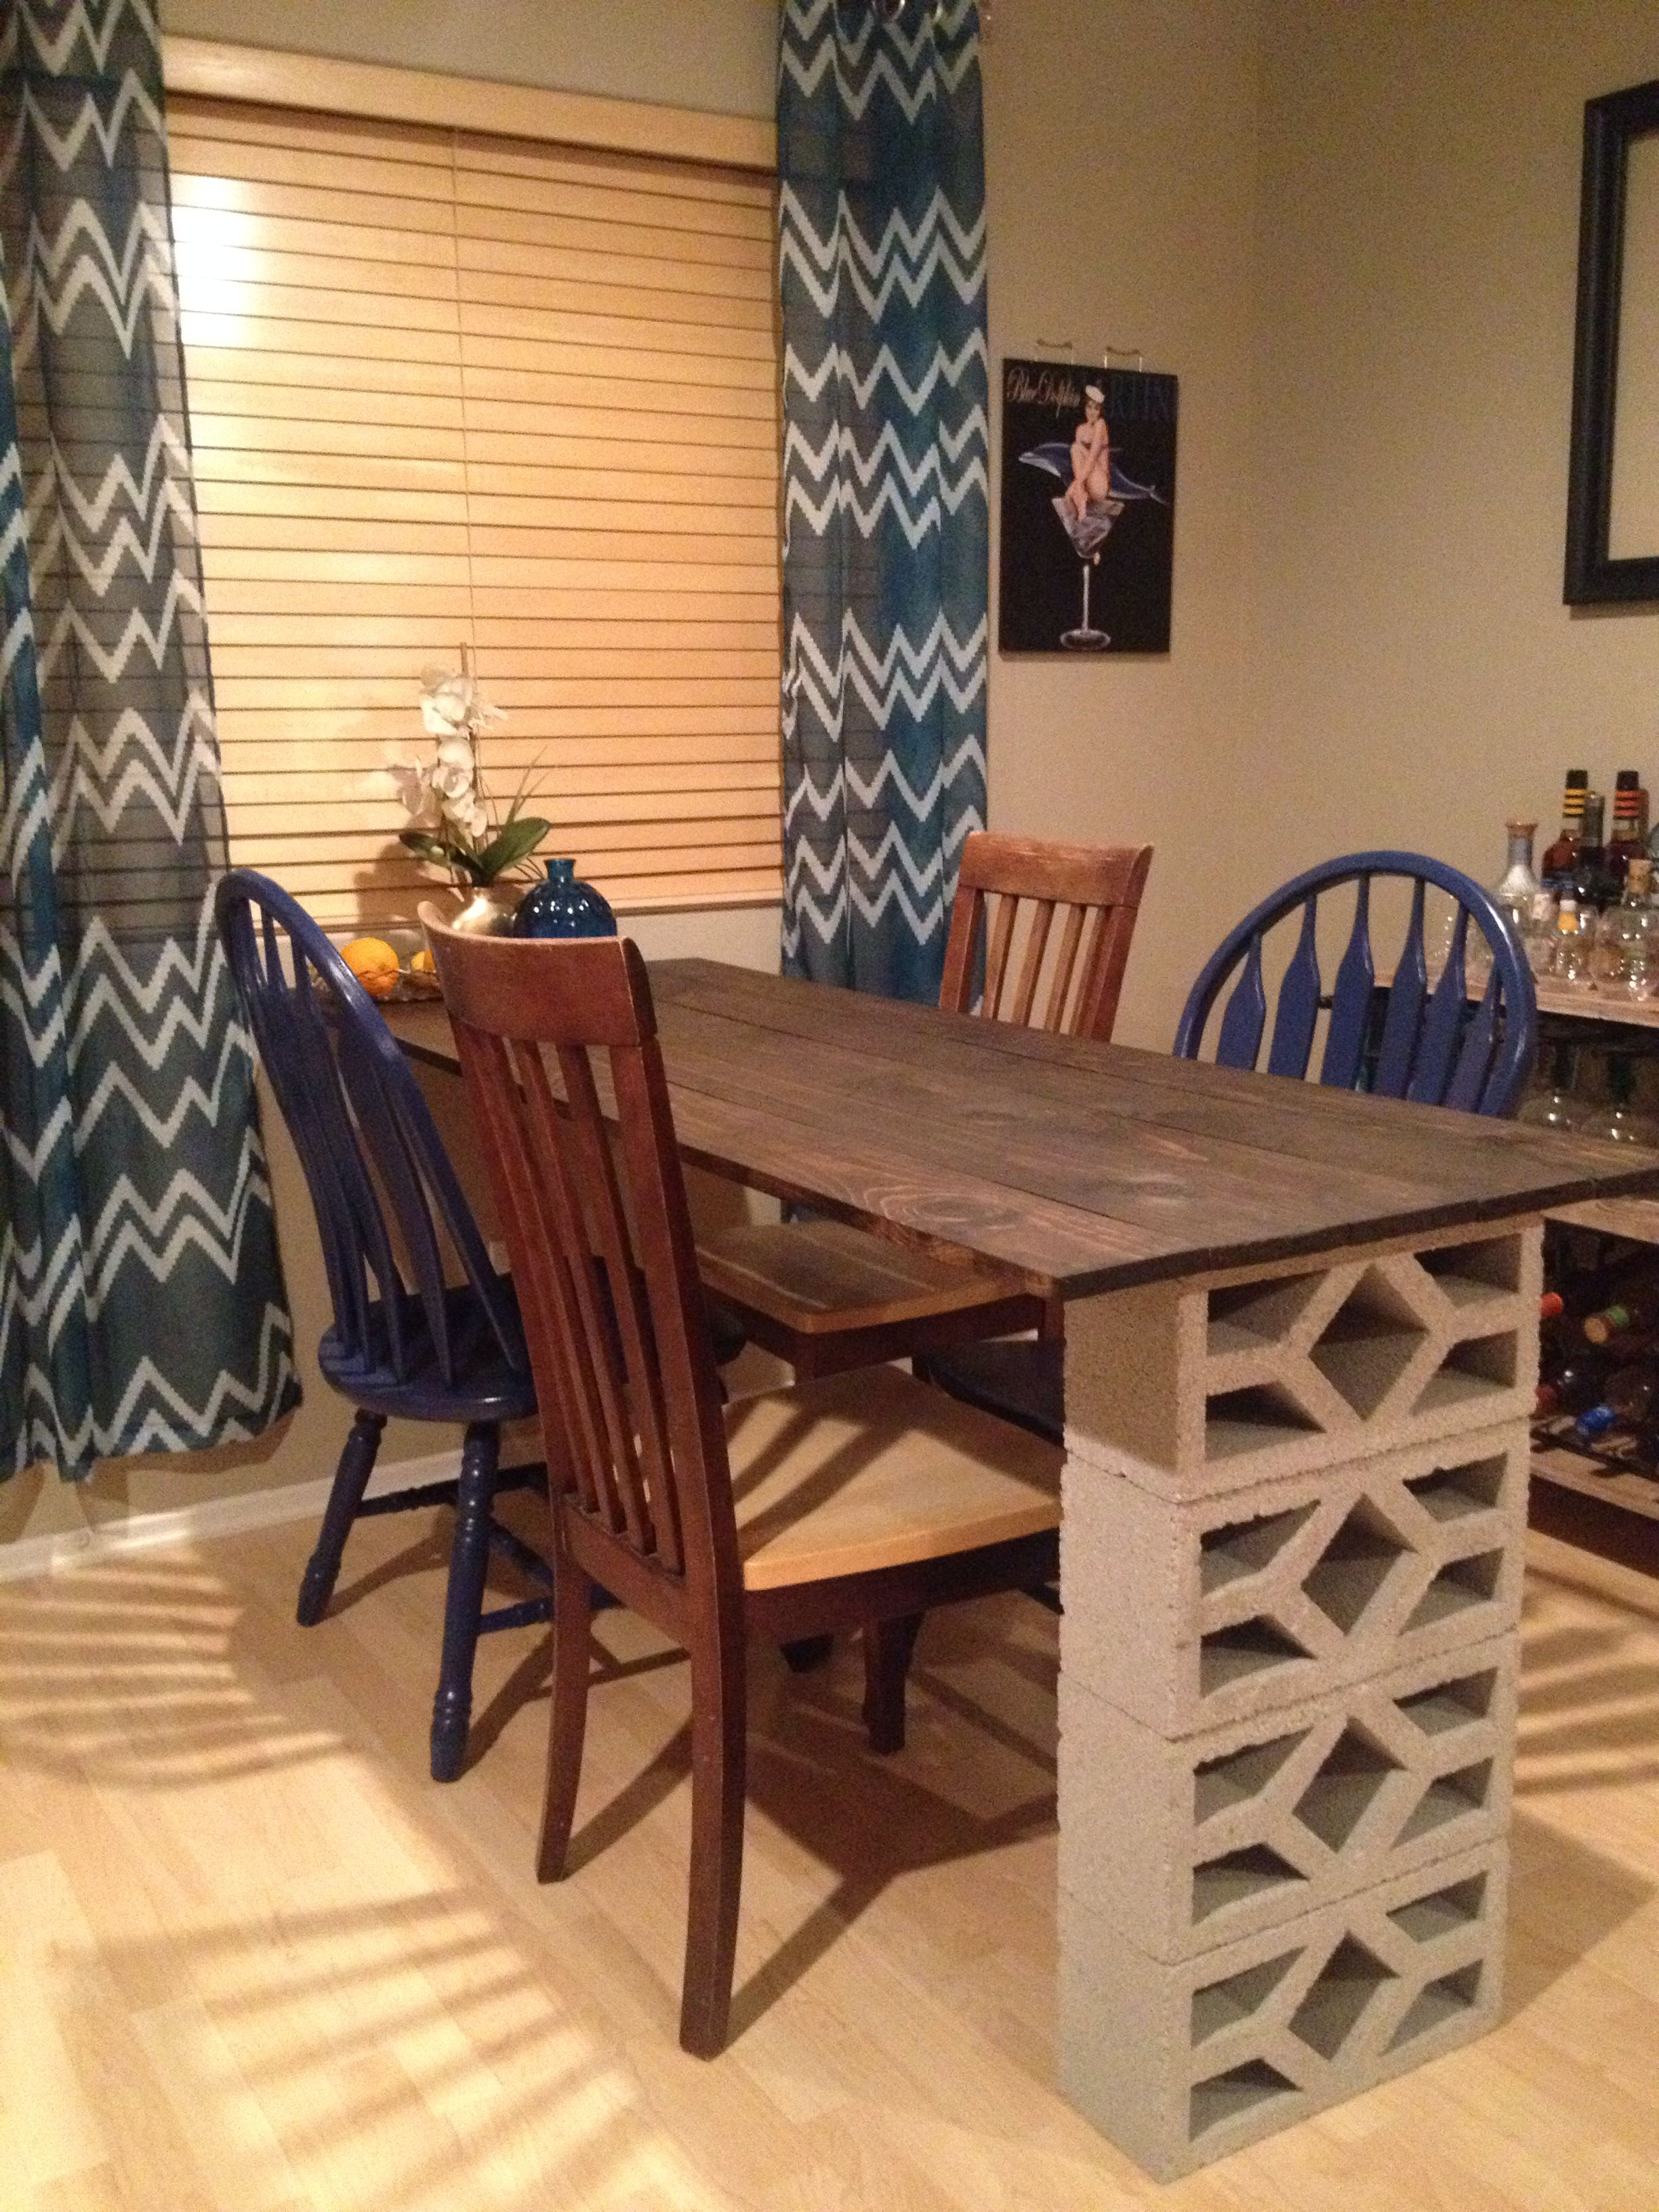 Done wood stain and cinder blocks from home depot for Dining room tables home depot